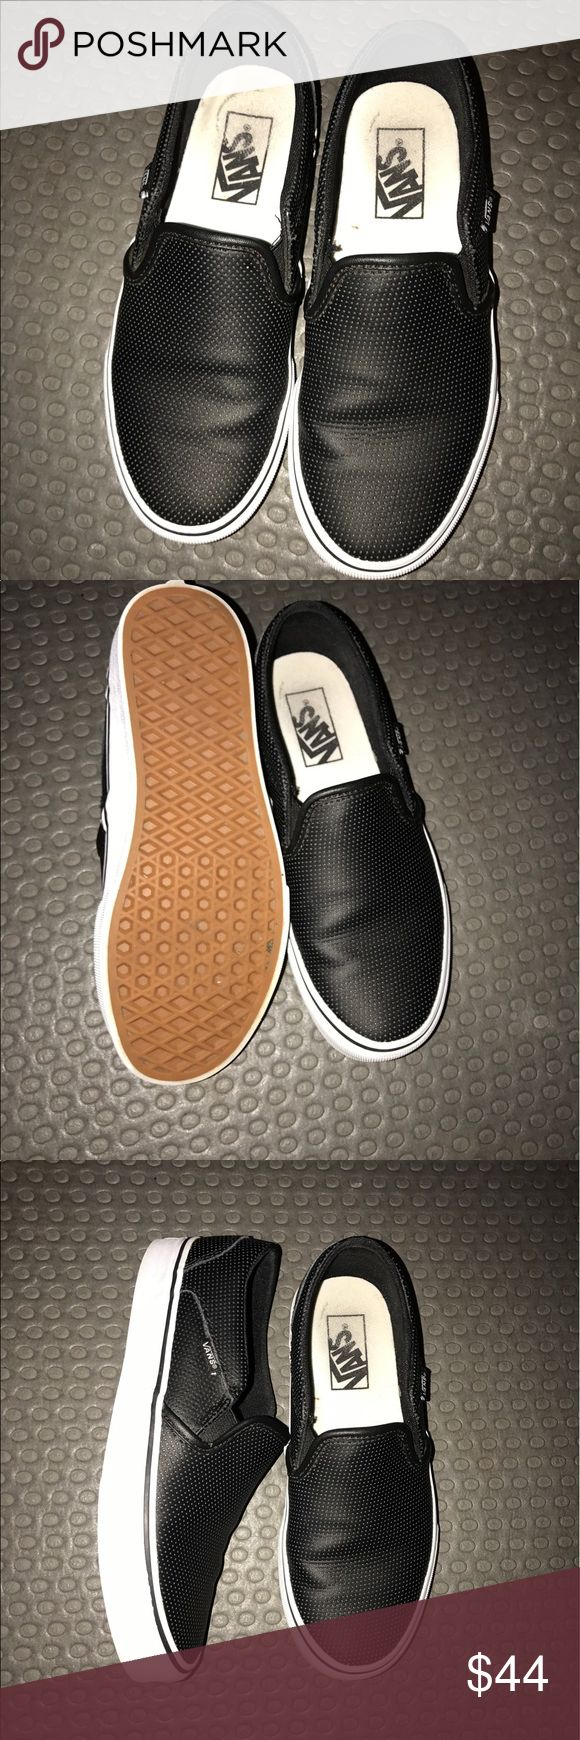 Perforated slip on Vans !!! Worn very little (like three times). The rings at the heel on the inside are from my inserts. I bought them too big this is the only reason for sale! Thanks 🤗 Vans Shoes Sneakers